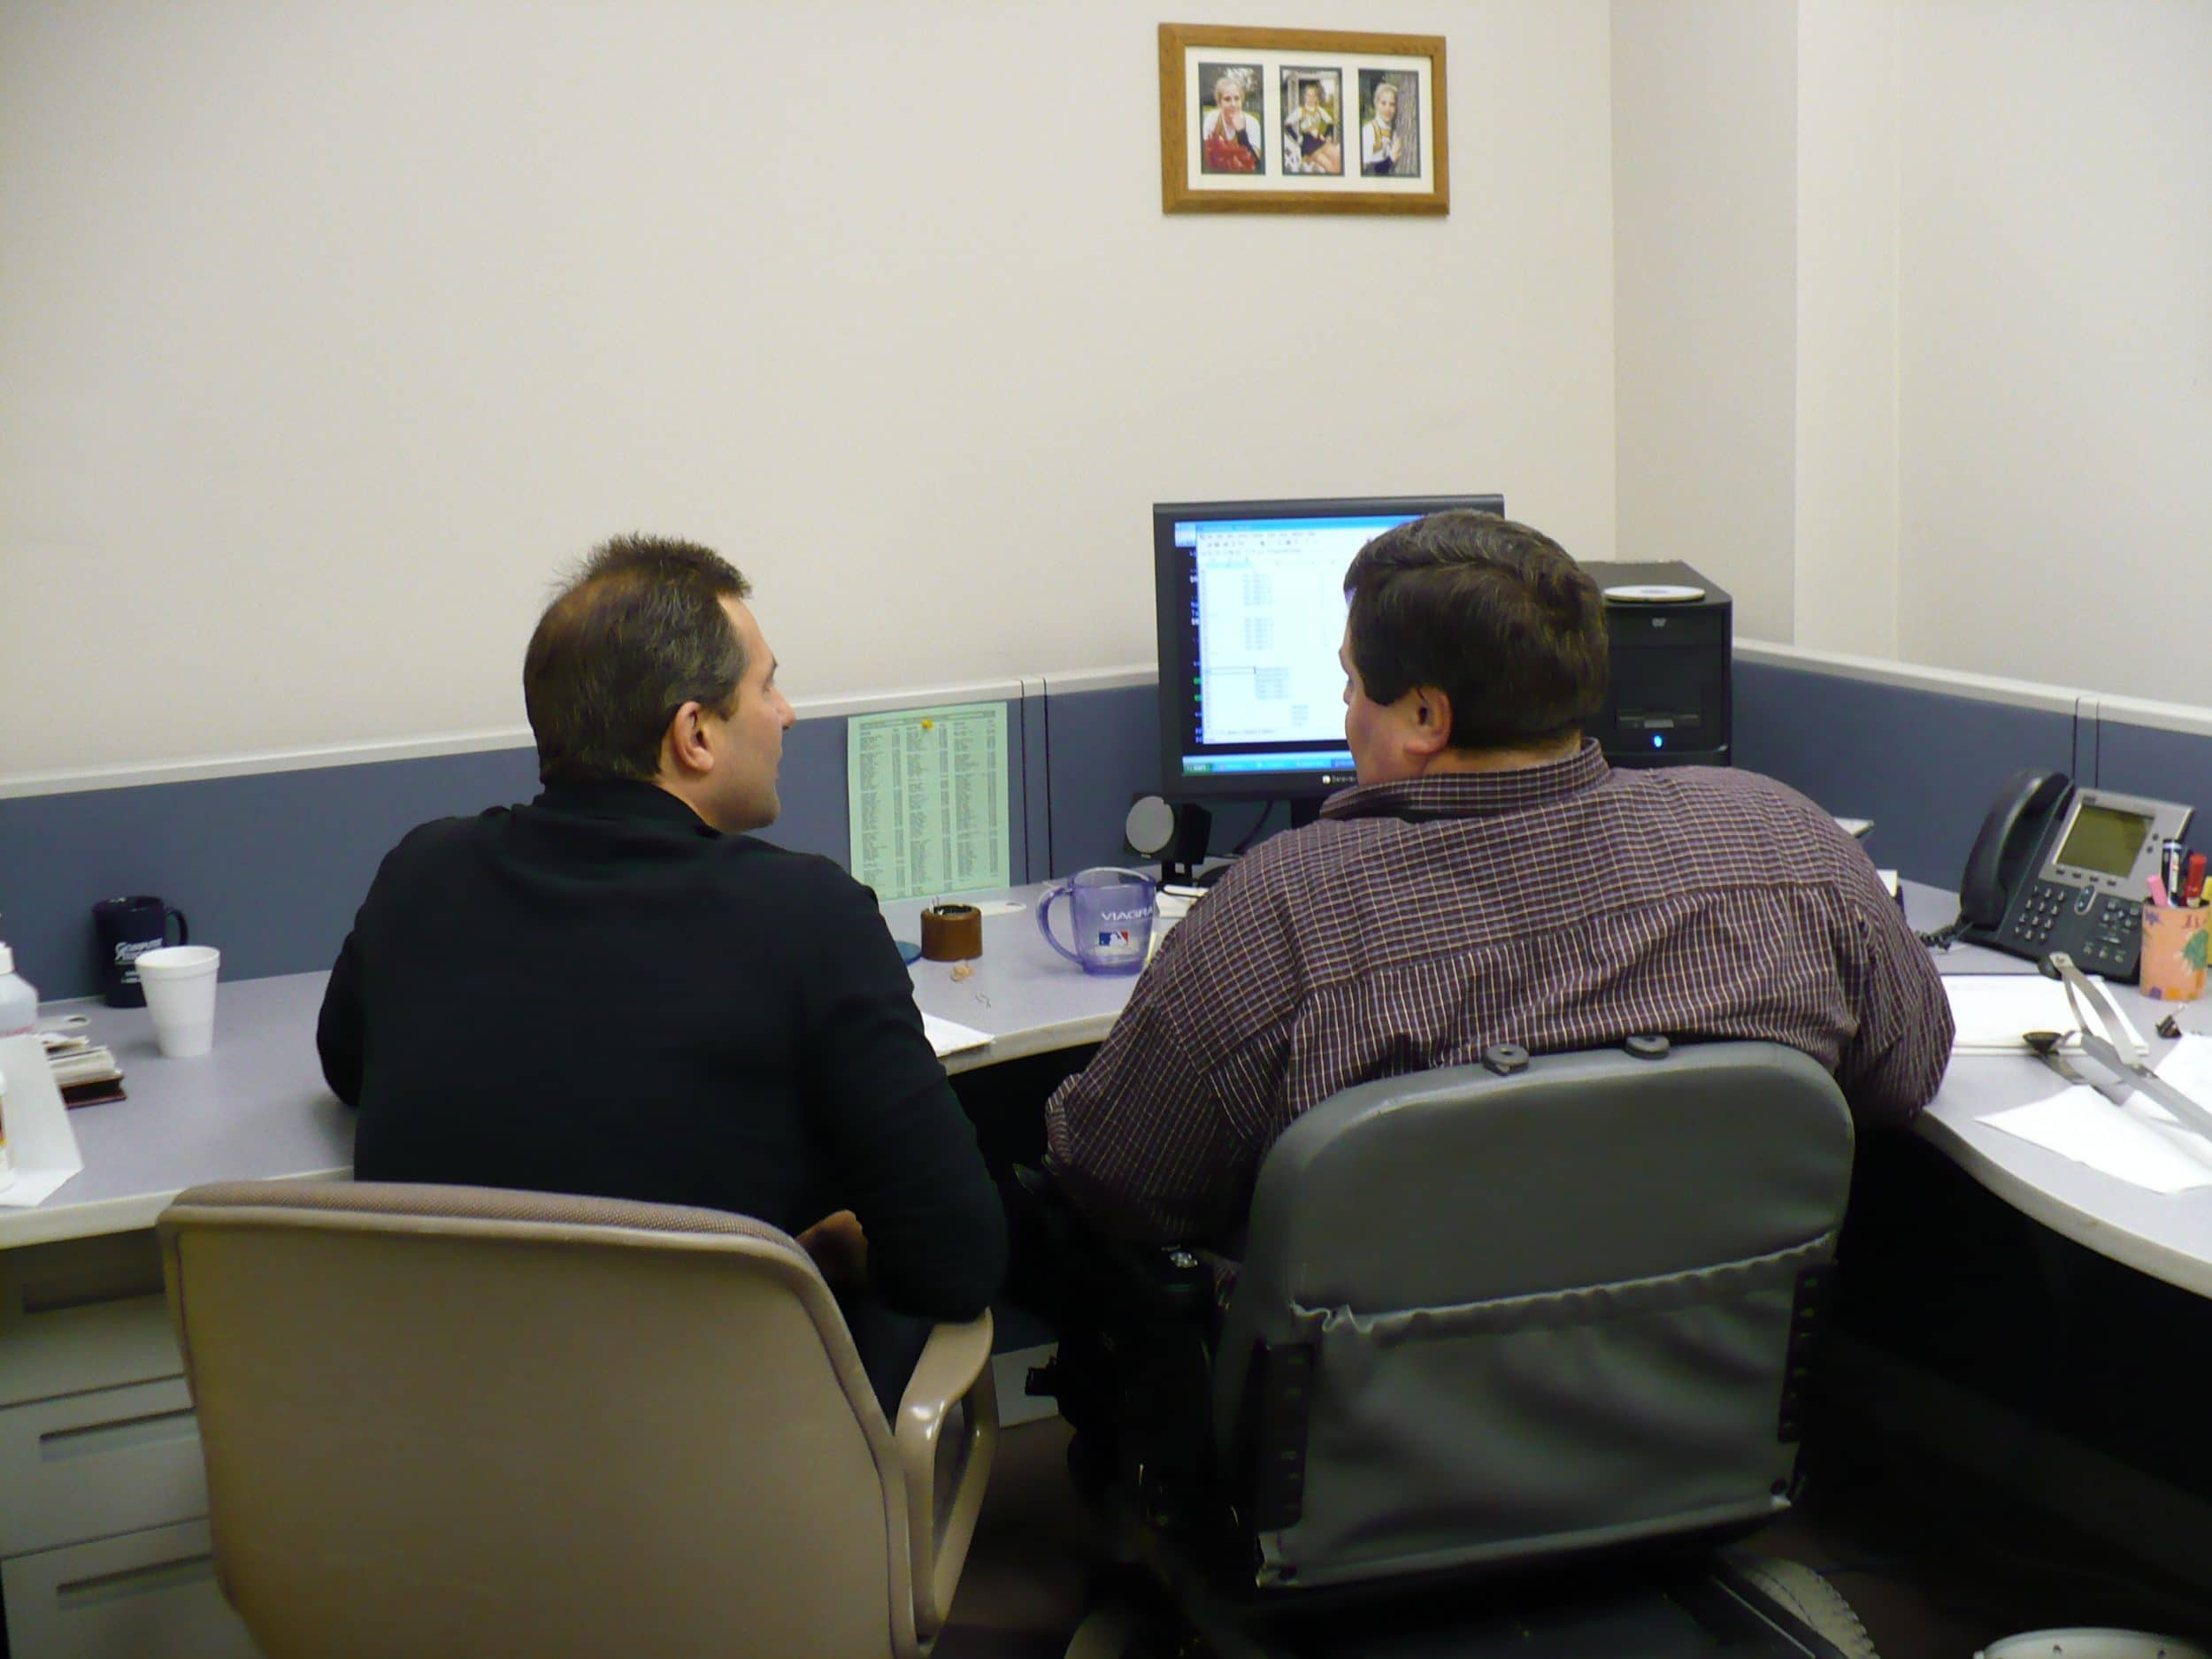 Two men siting at a desk with a computer photographed from behind.